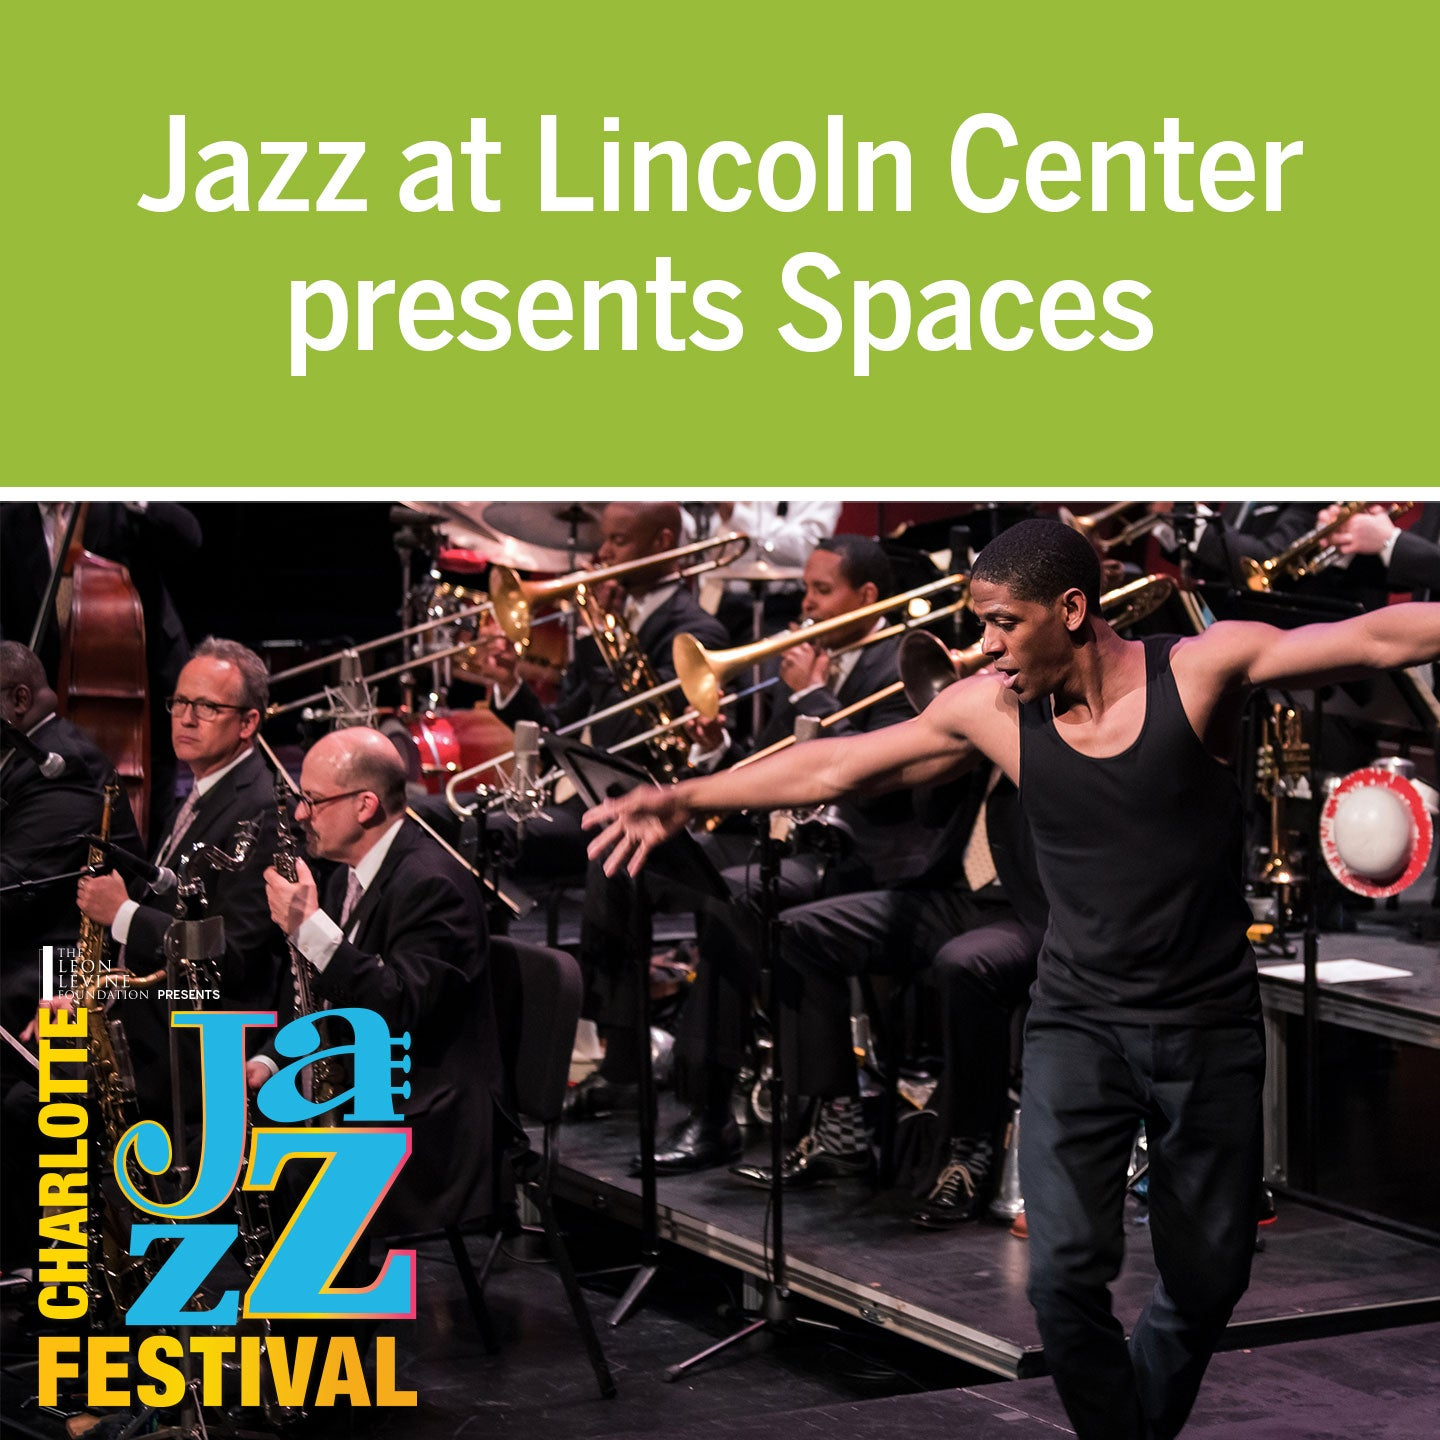 Jazz at Lincoln Center Orchestra Presents: Wynton Marsalis' Spaces